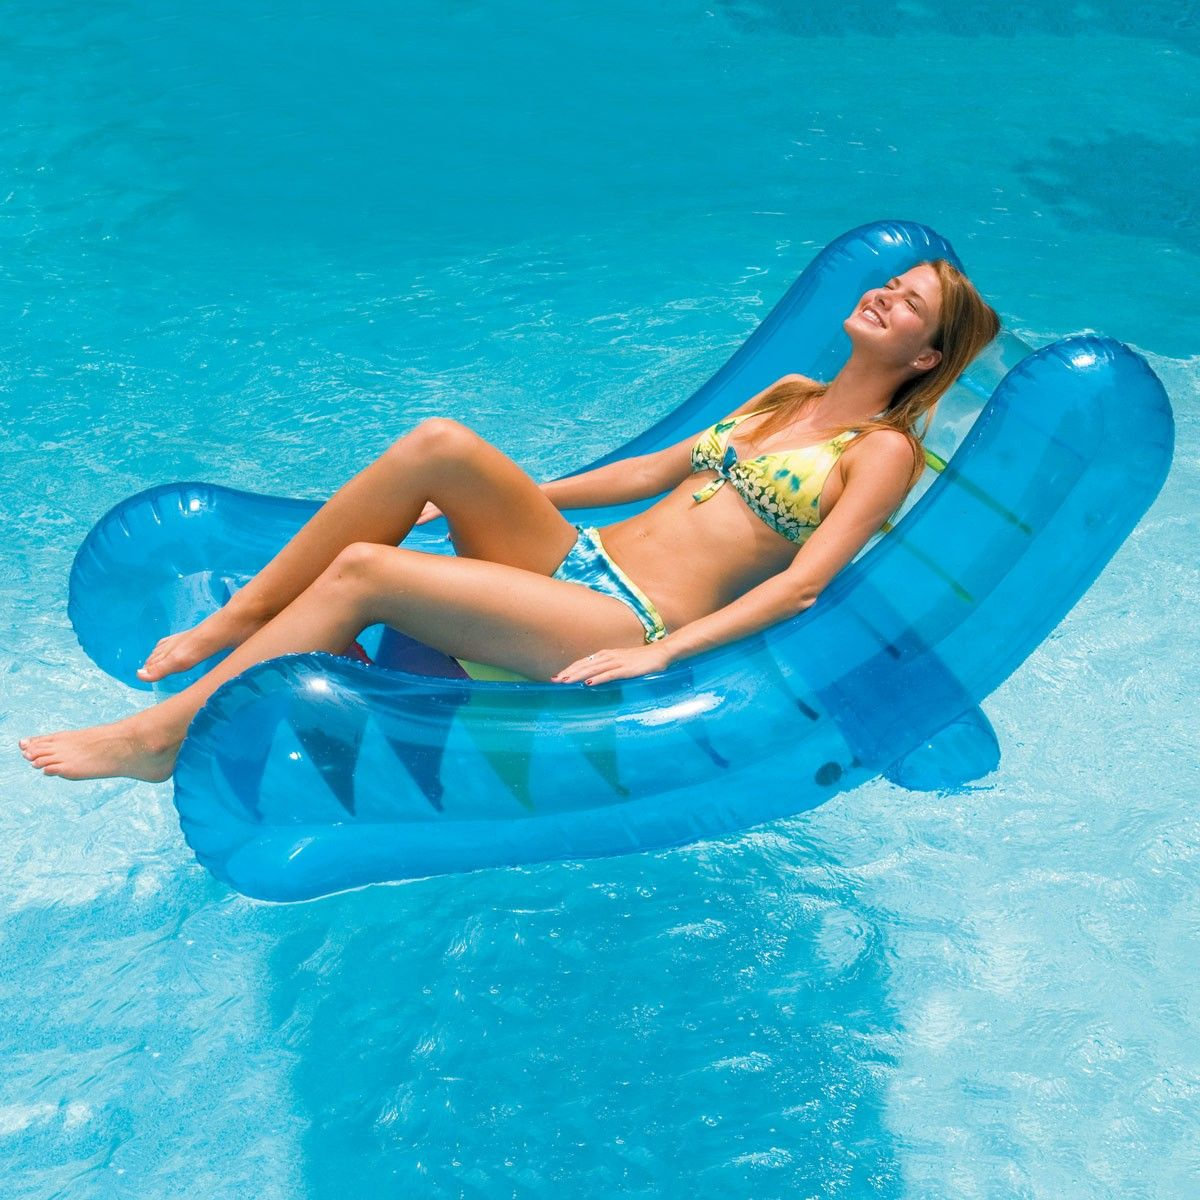 An Inflatable Rocker That S Fun Fashionable And Comfortable Rocker Lounger Is A Pool Rocker That S Uniquely Pool Lounger Inflatable Swimming Pool Pool Lounge